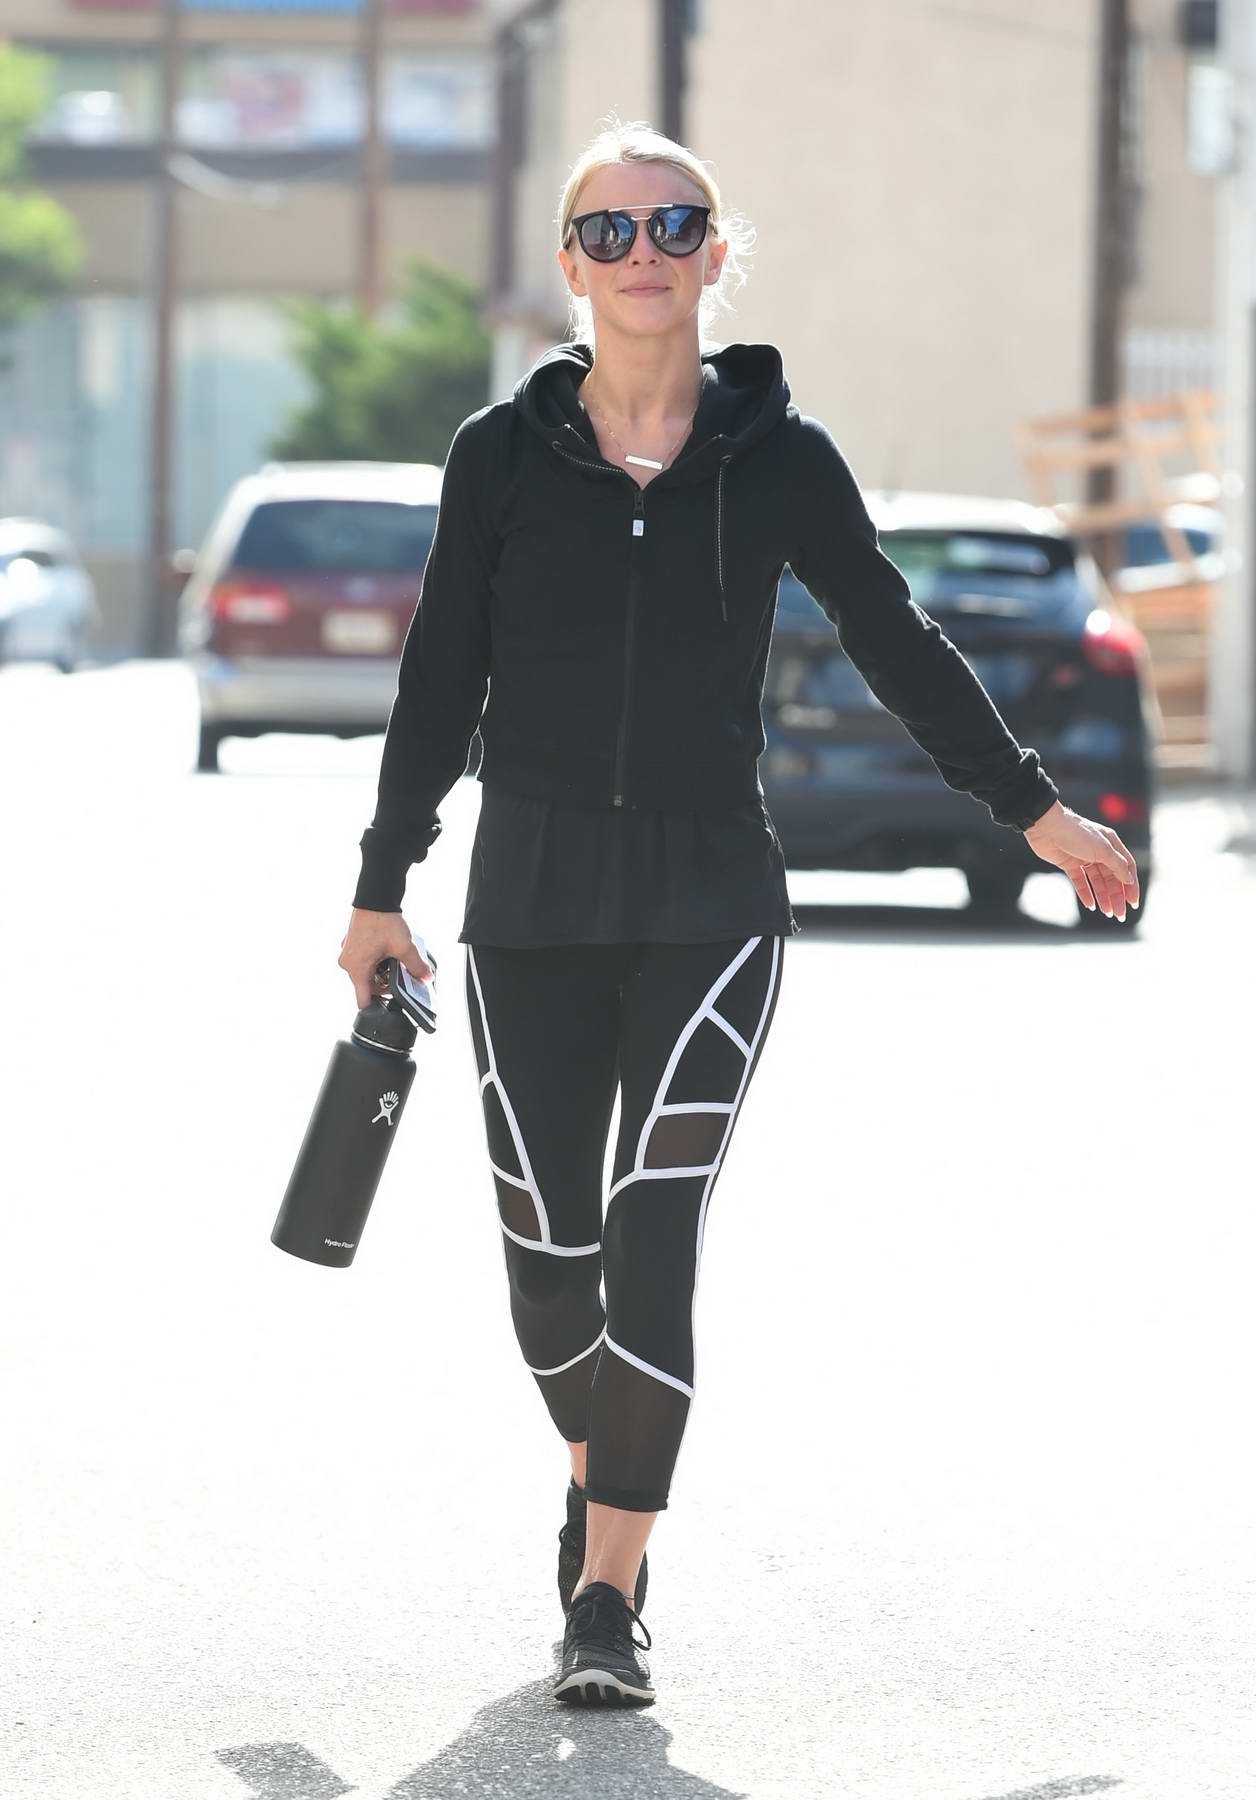 Julianne Hough leaving after her Workout in Los Angeles